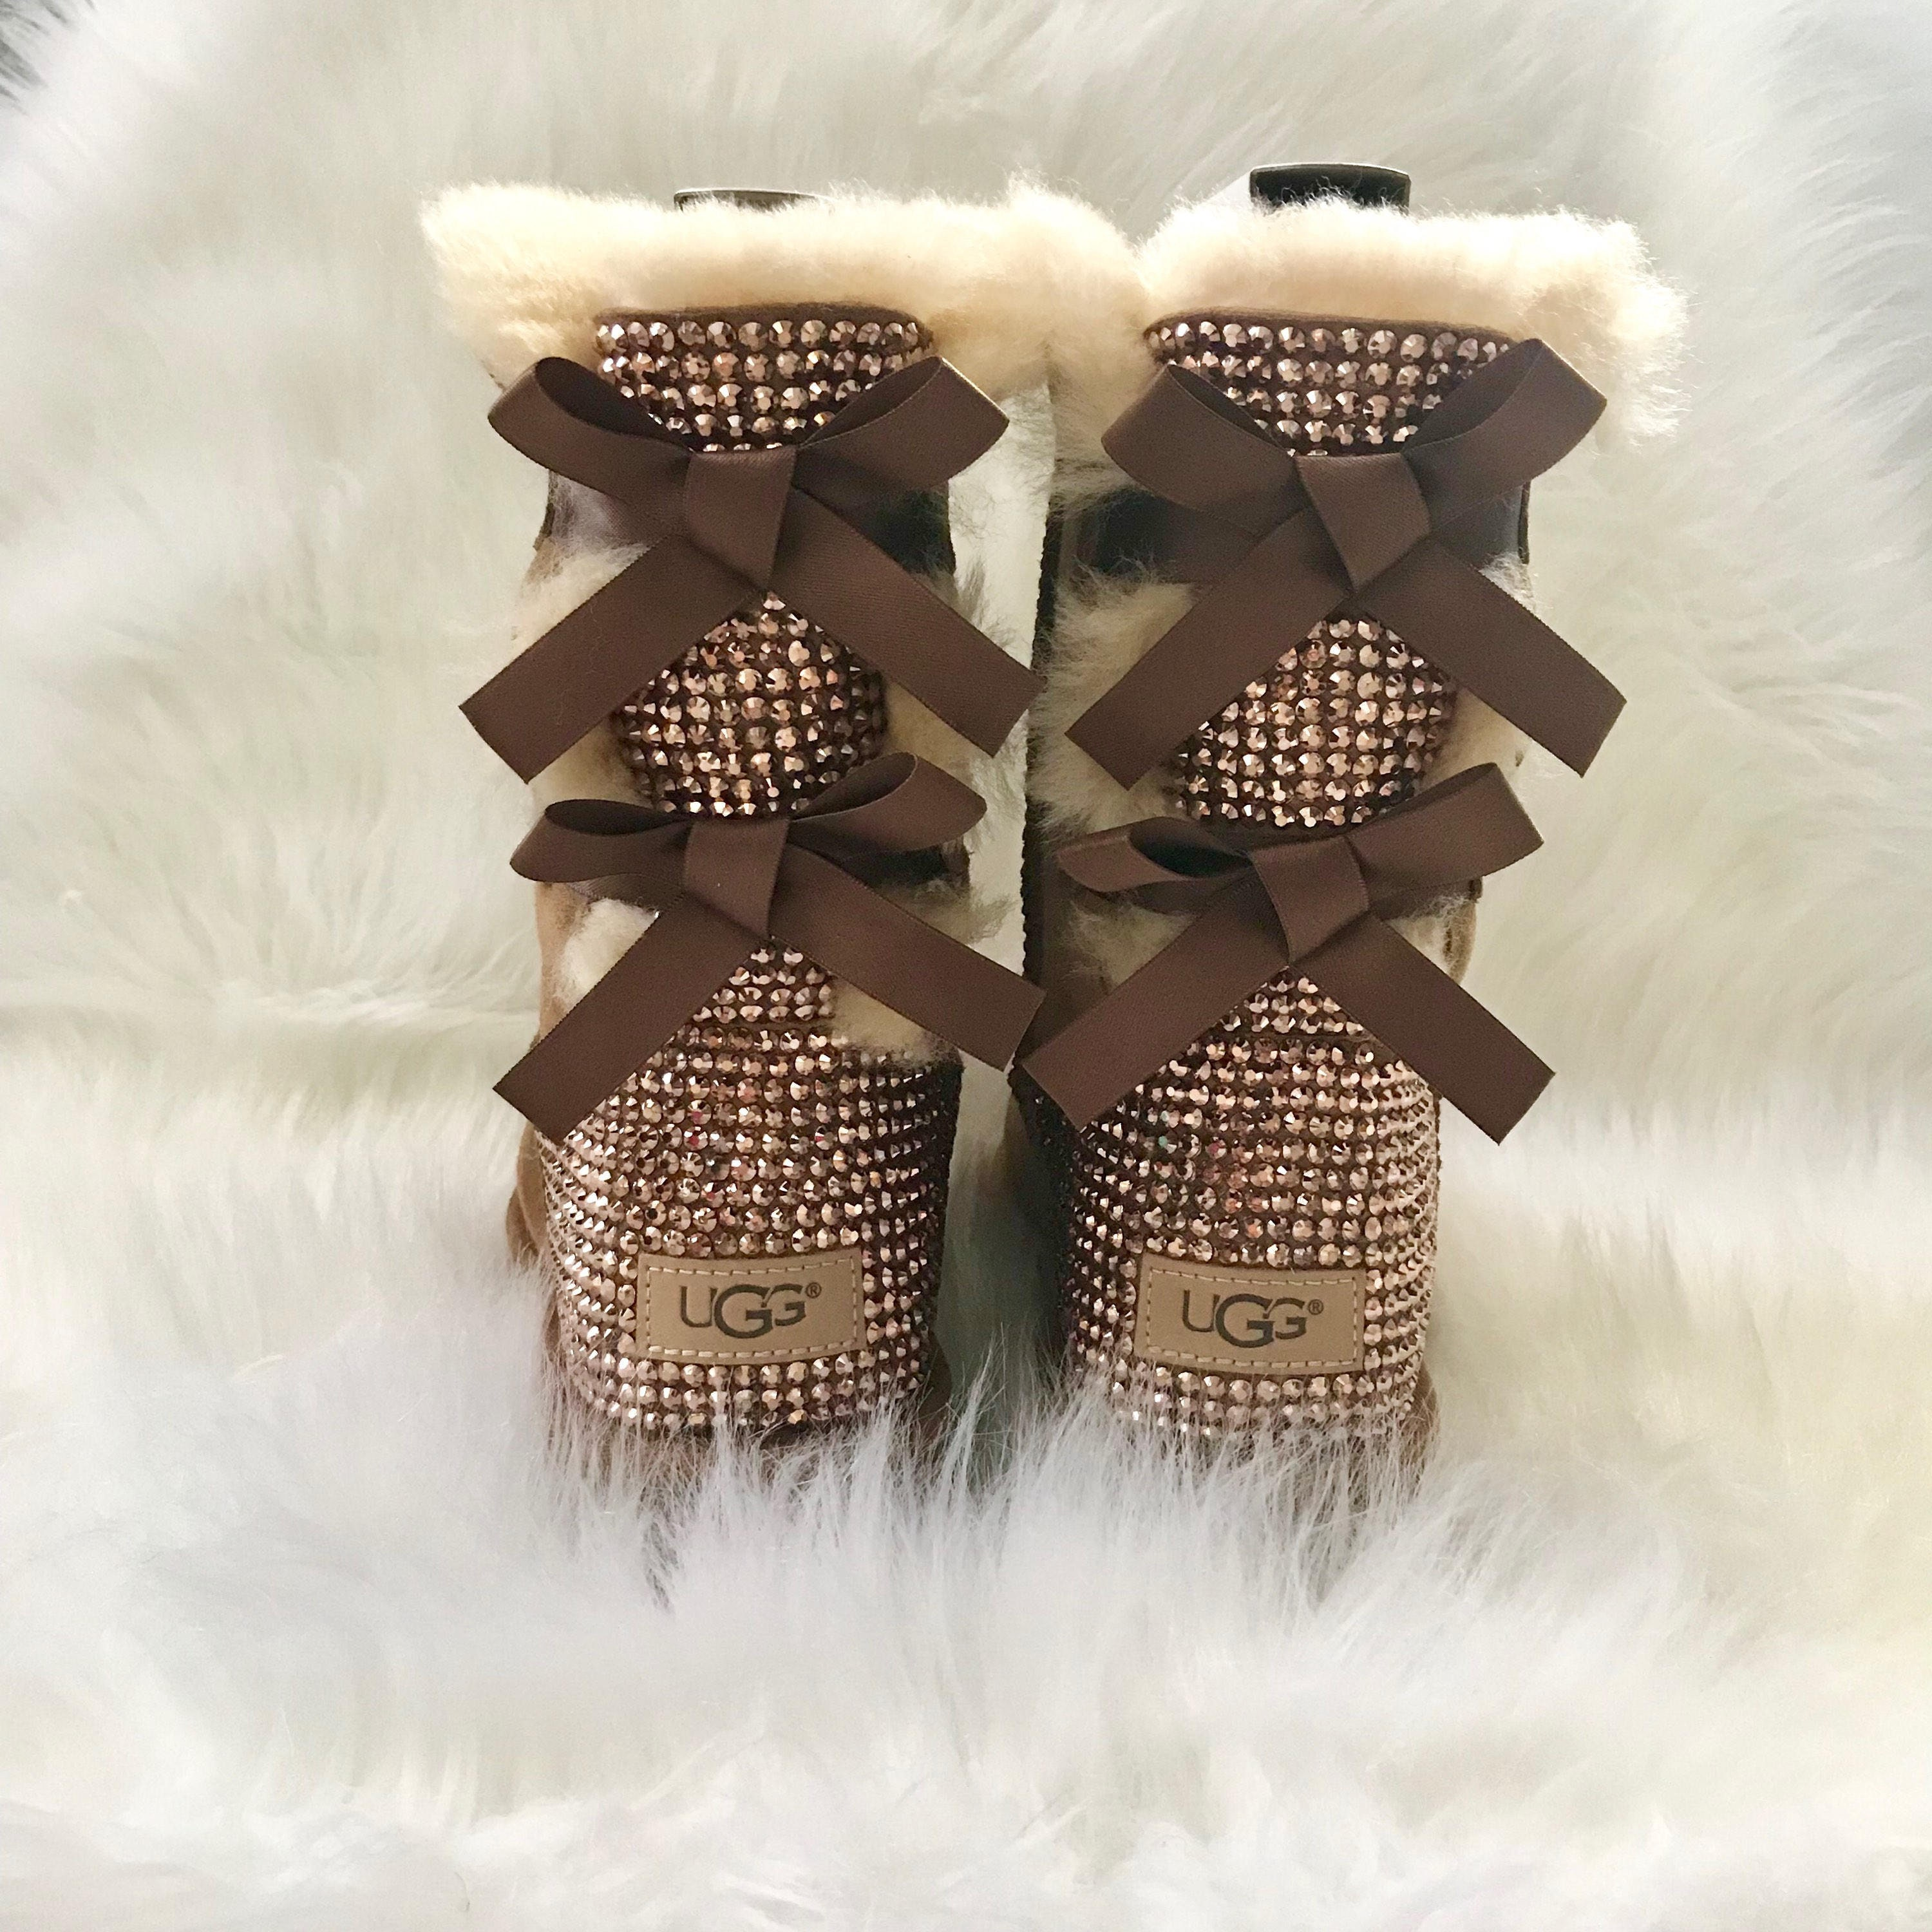 6a1f9207f46 bling UGG boots - crystal UGGs- FREE SHIPPING- bling snow boots- womans ugg  boots- custom ugg boots with bows- bling chestnut ugg boots